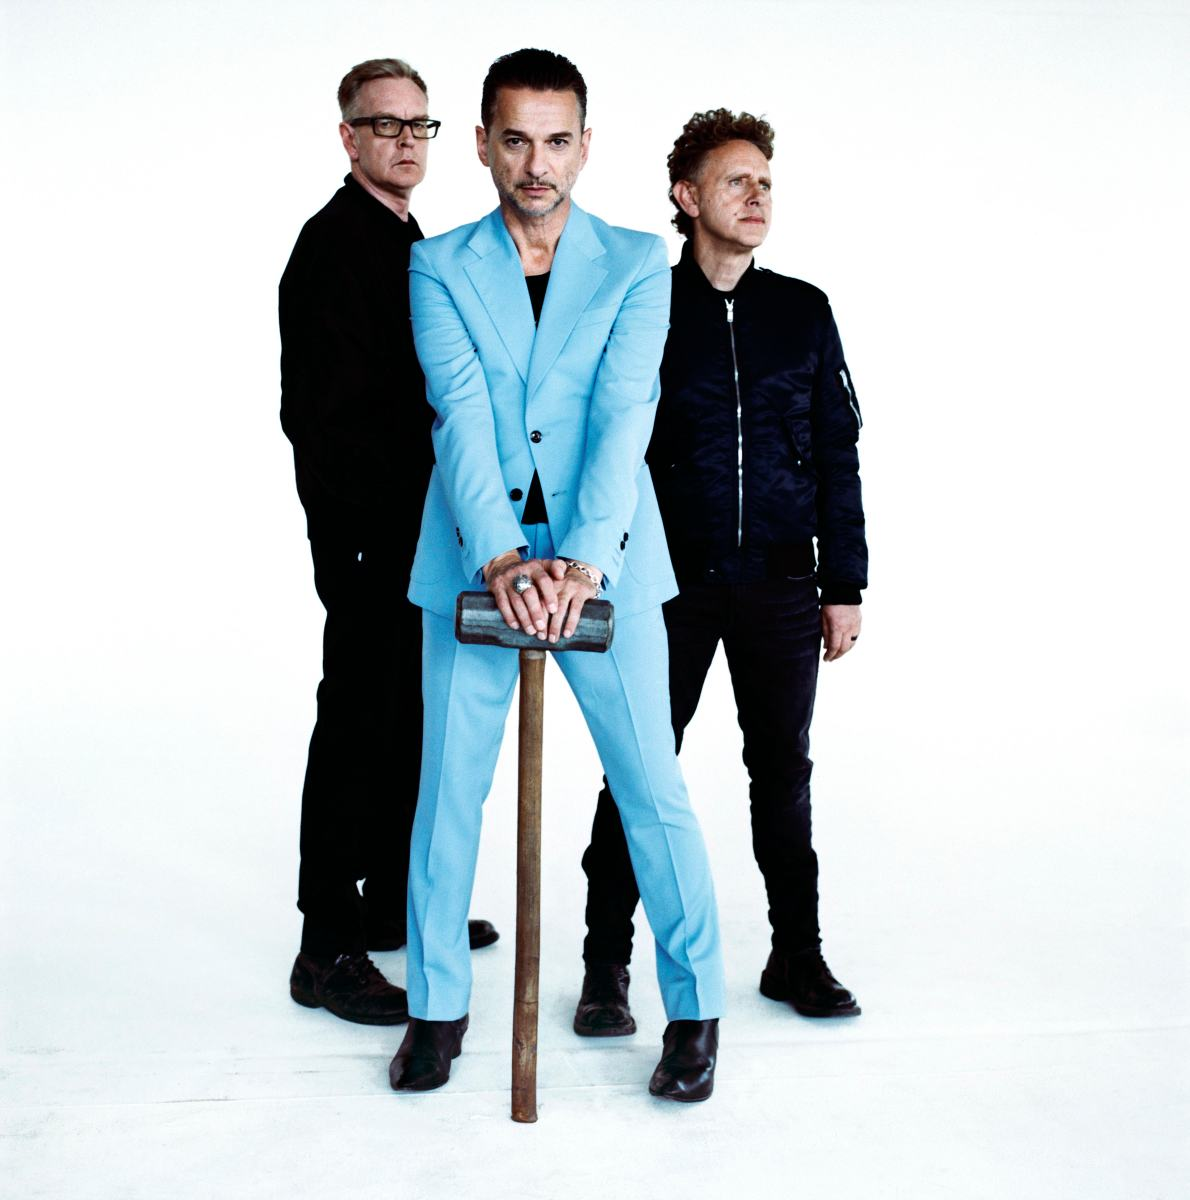 Depeche Mode Release Innovative 360 Video 'Going Backwards'